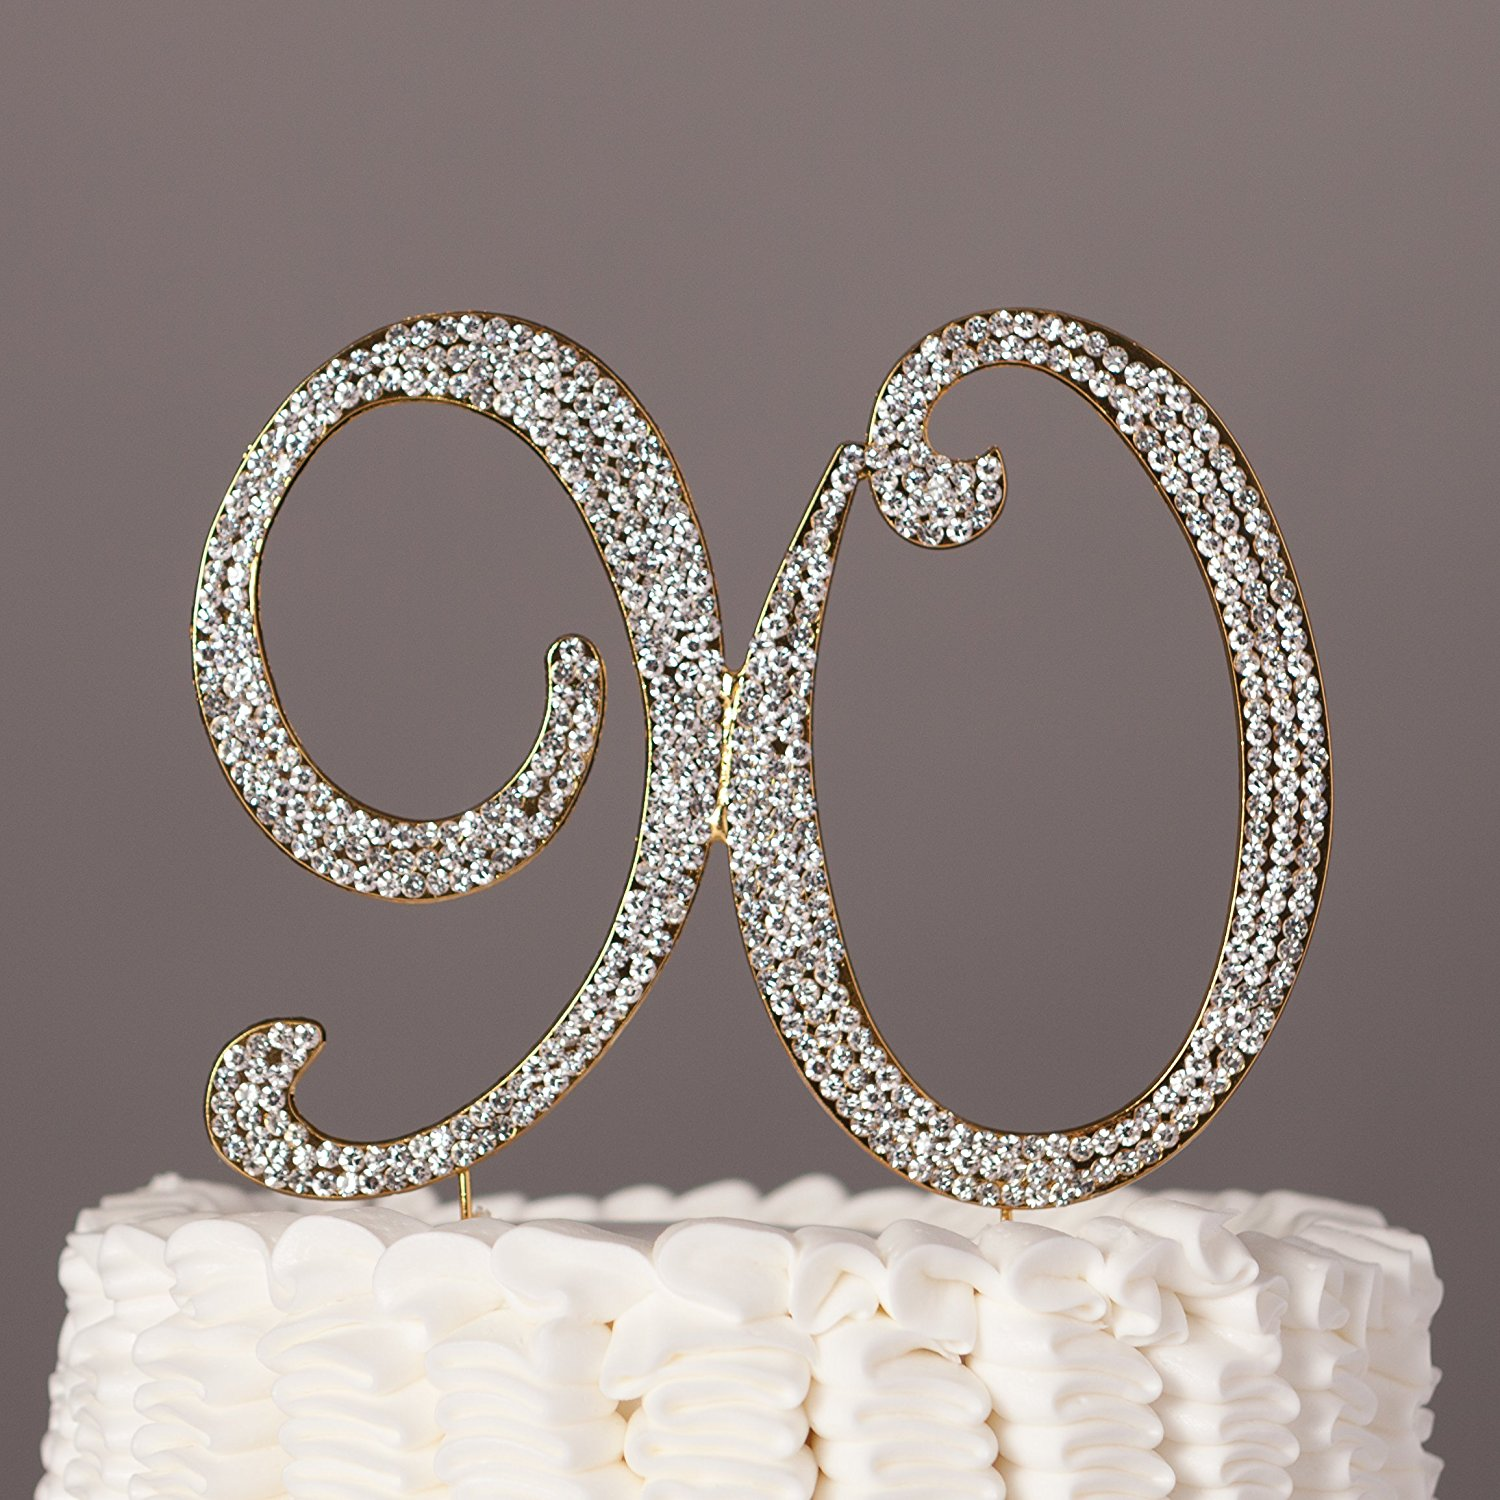 90 Cake Topper For 90th Birthday Rhinestone Number Party Supplies Decoration Ideas Gold